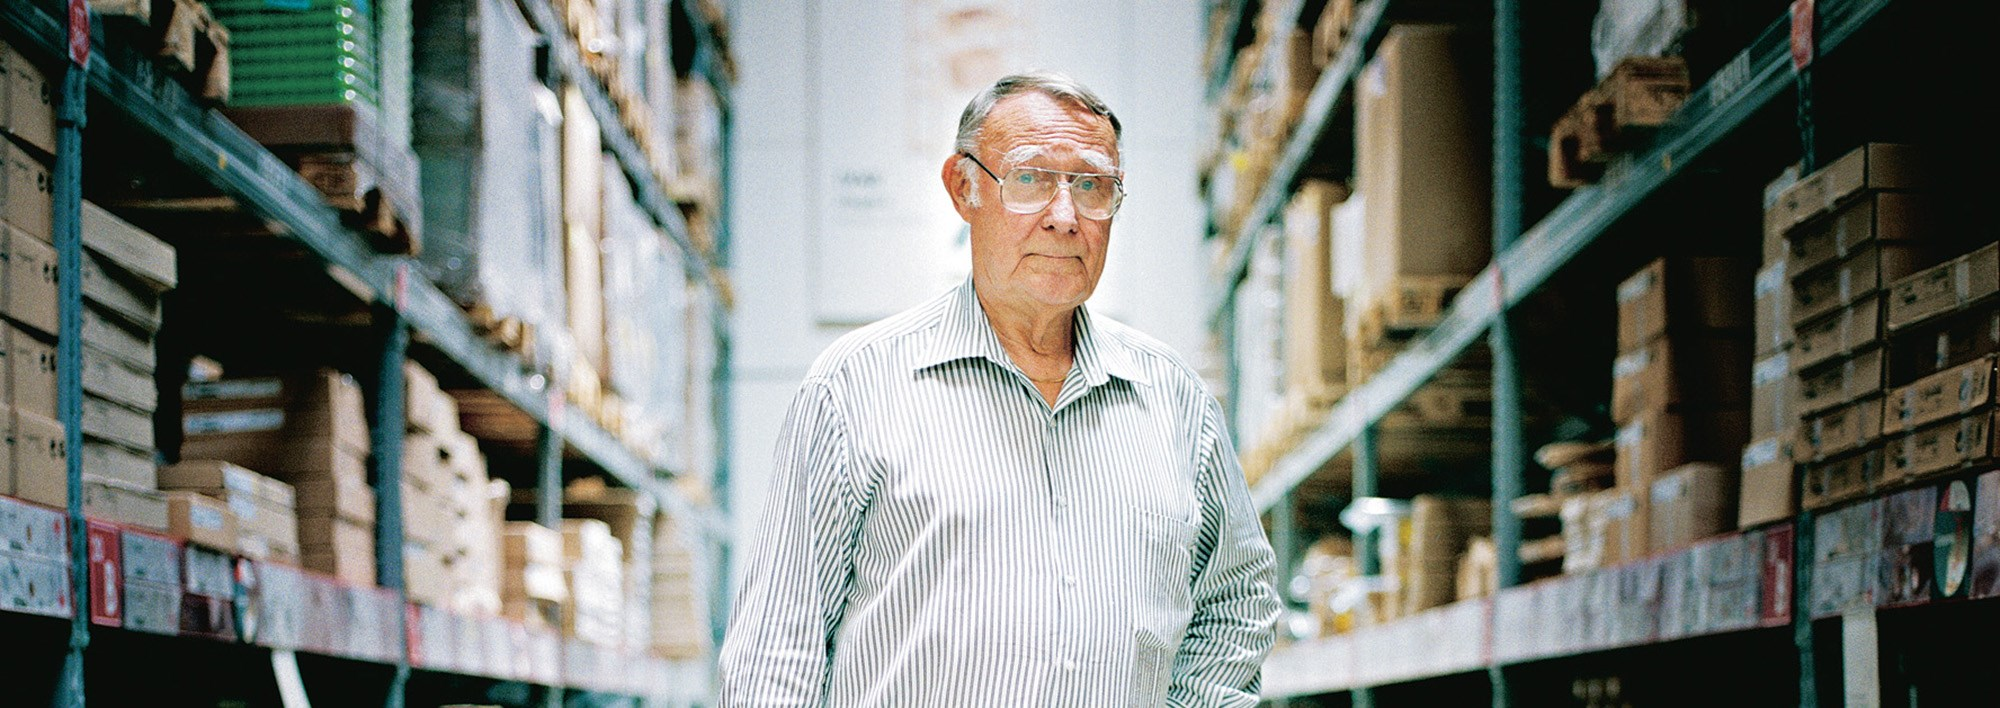 Ingvar Kamprad Photo: Ikea